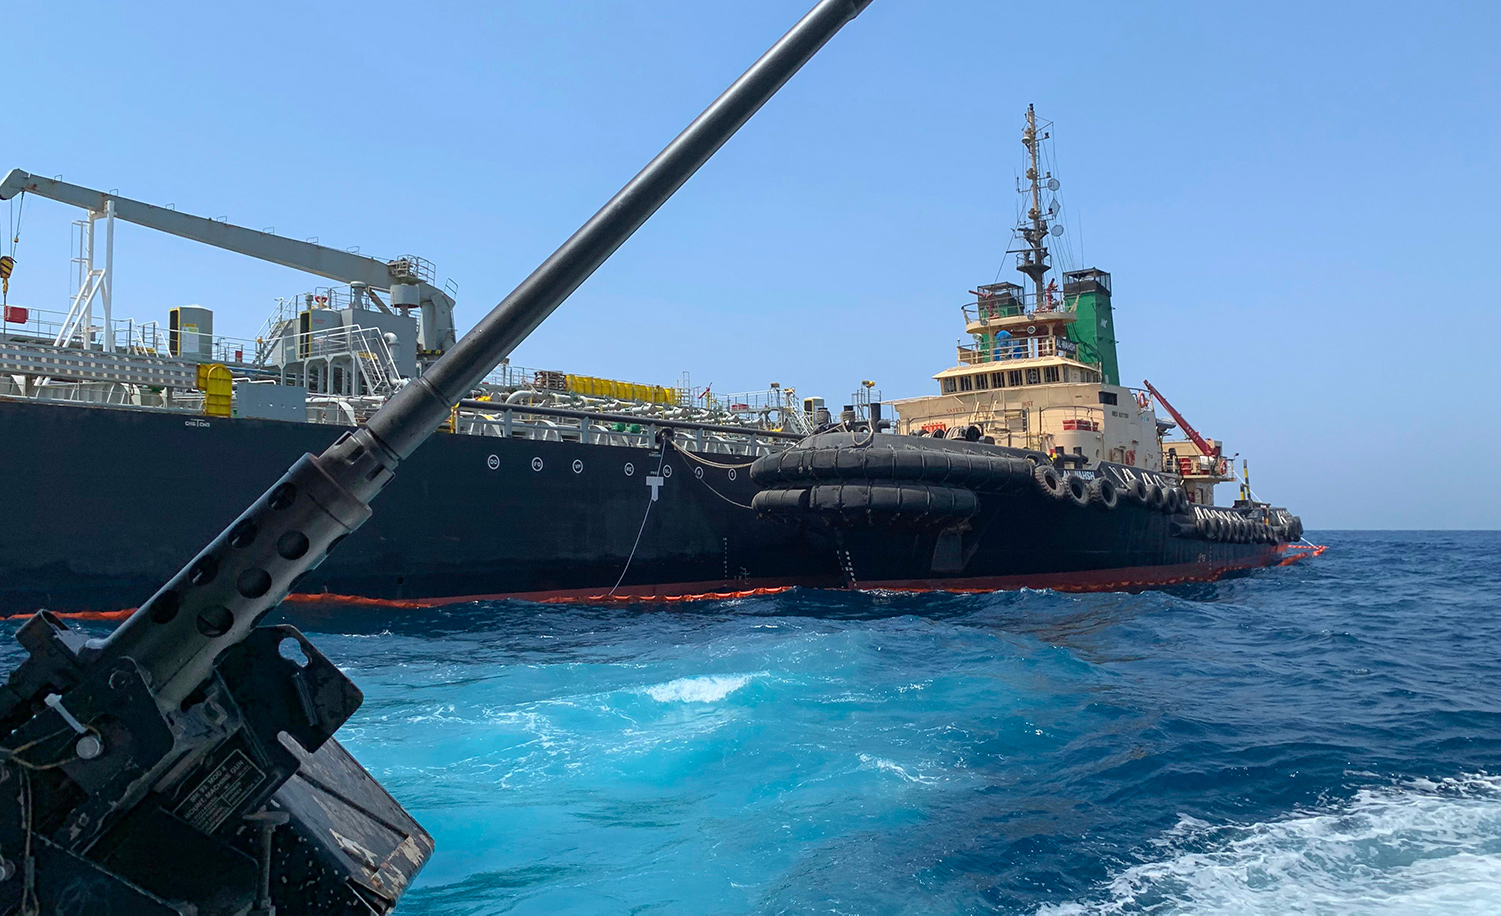 The Japanese oil tanker Kokuka Courageous off the port of the Gulf emirate of Fujairah on June 19, 2019 after being attacked by Iran. MUMEN KHATIB/AFP/Getty Images.